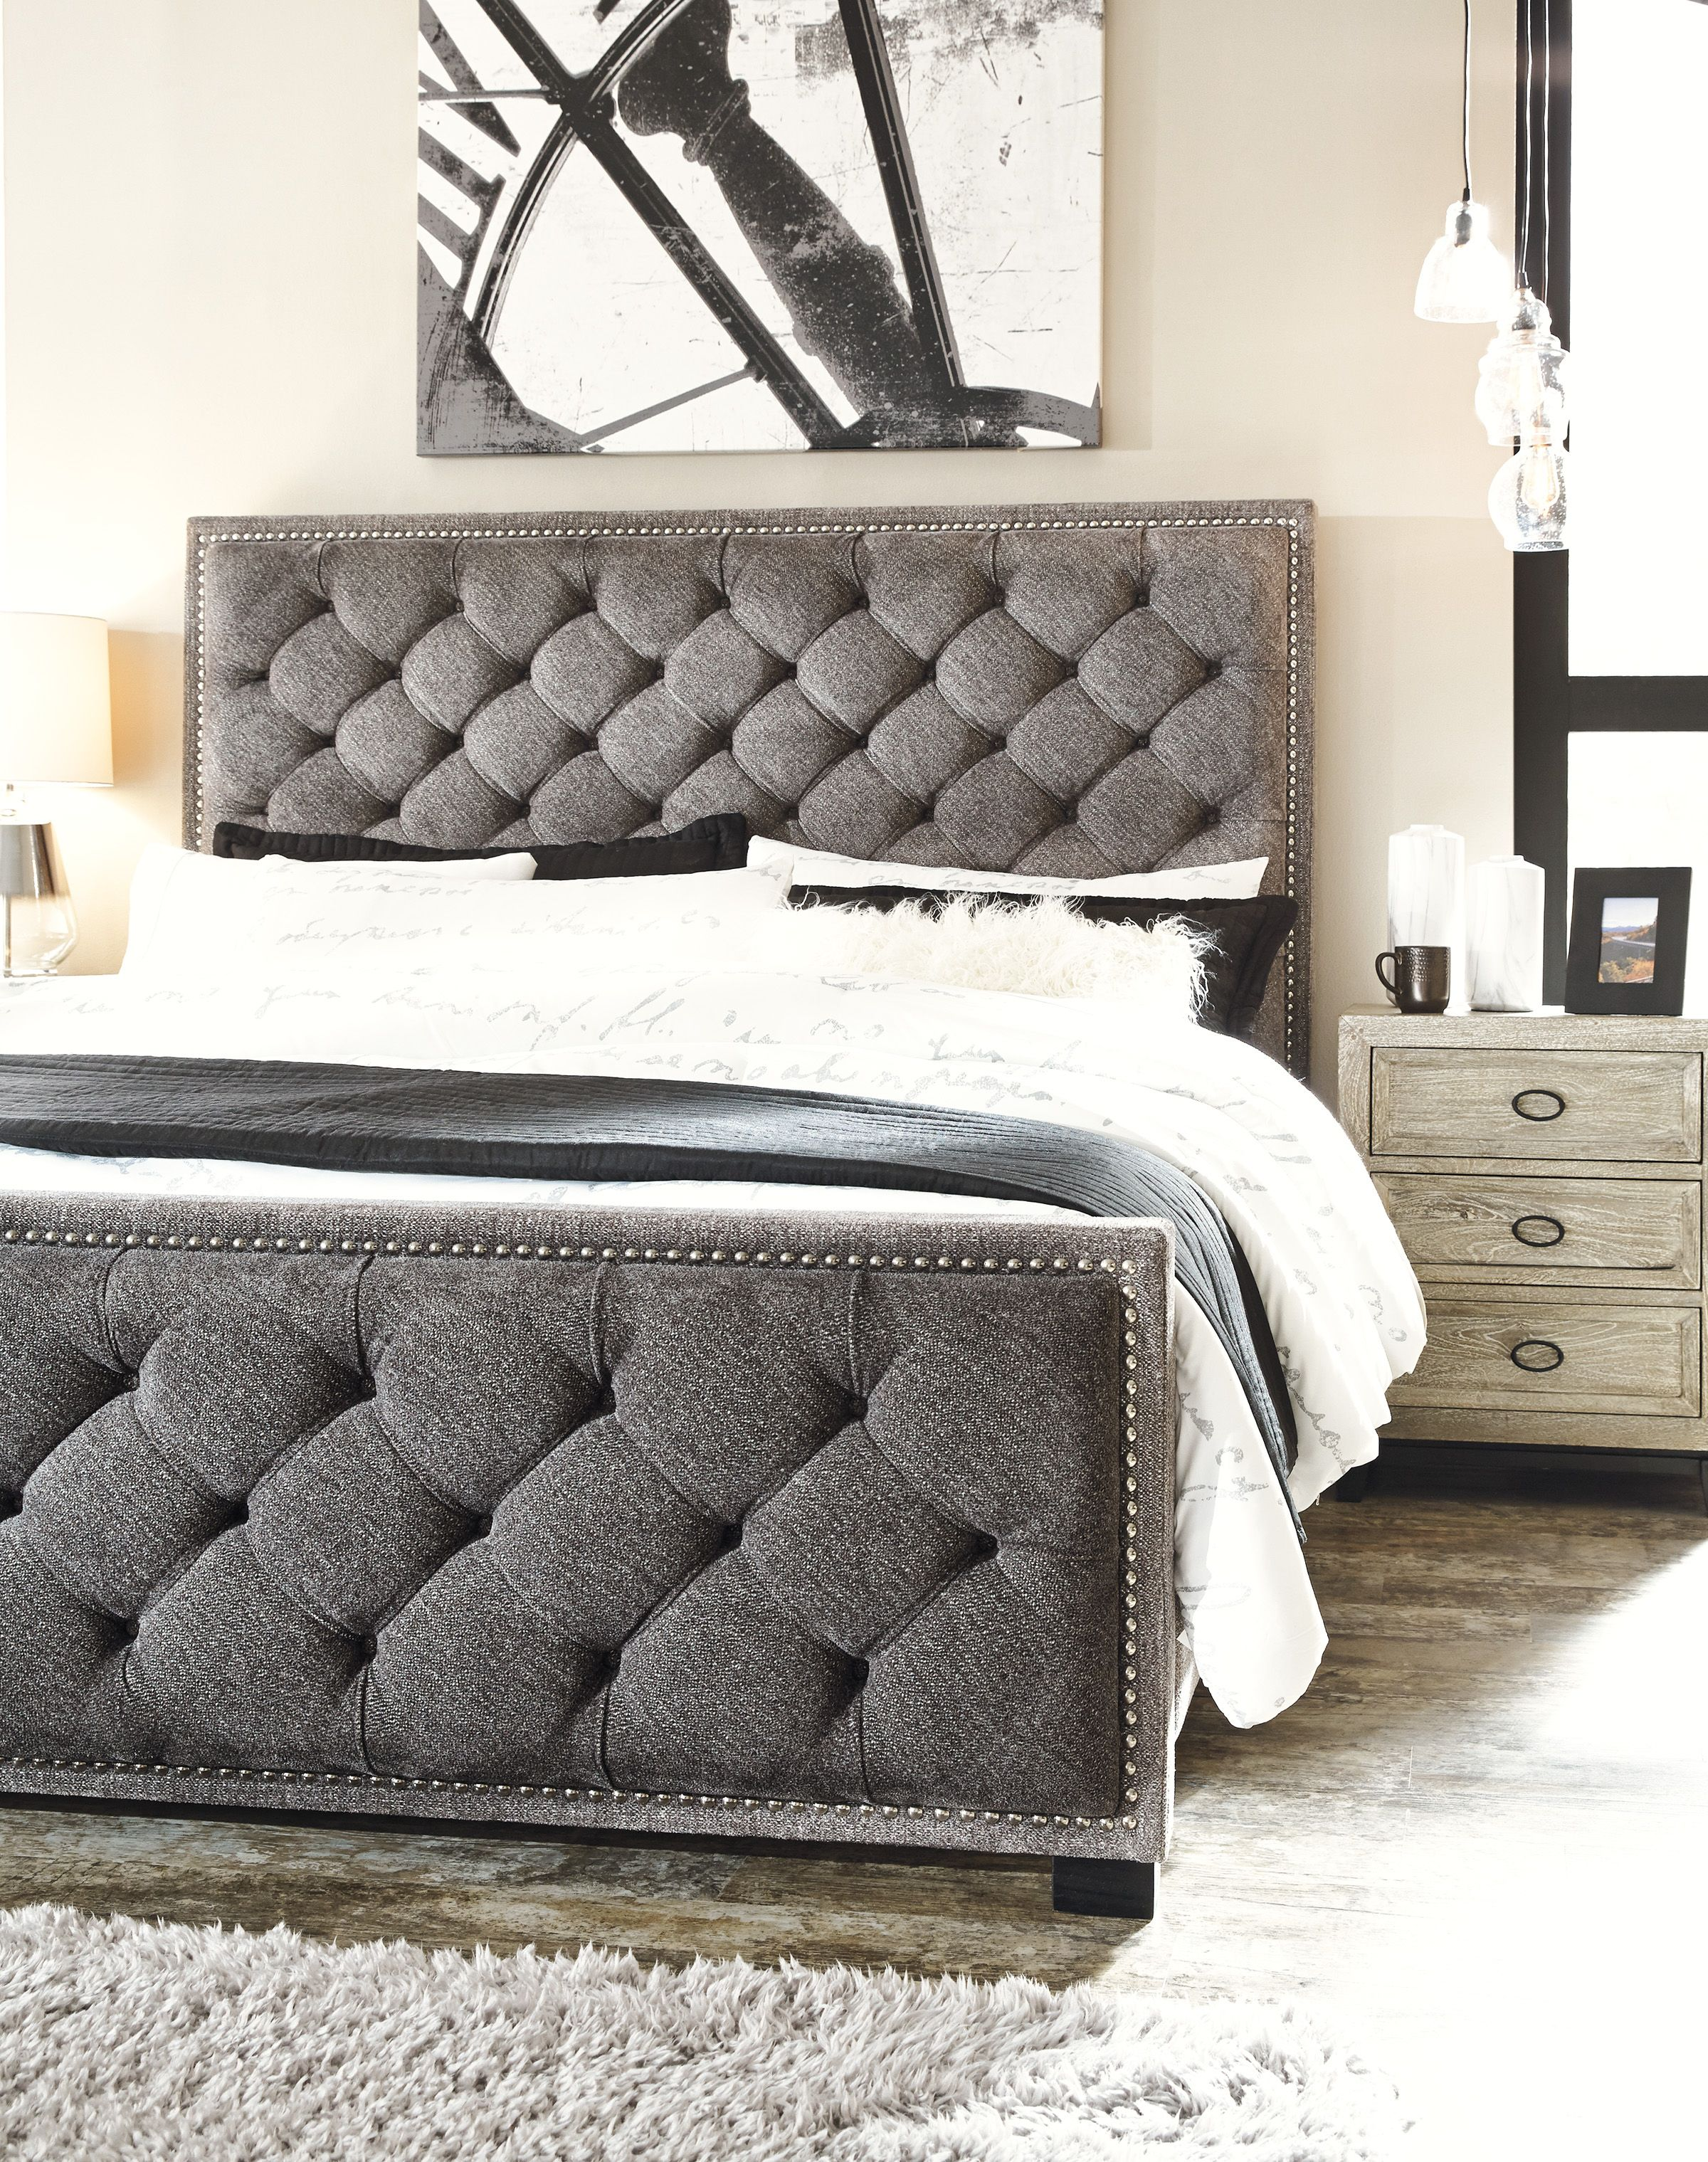 Halamay 3 piece queen upholstered bed